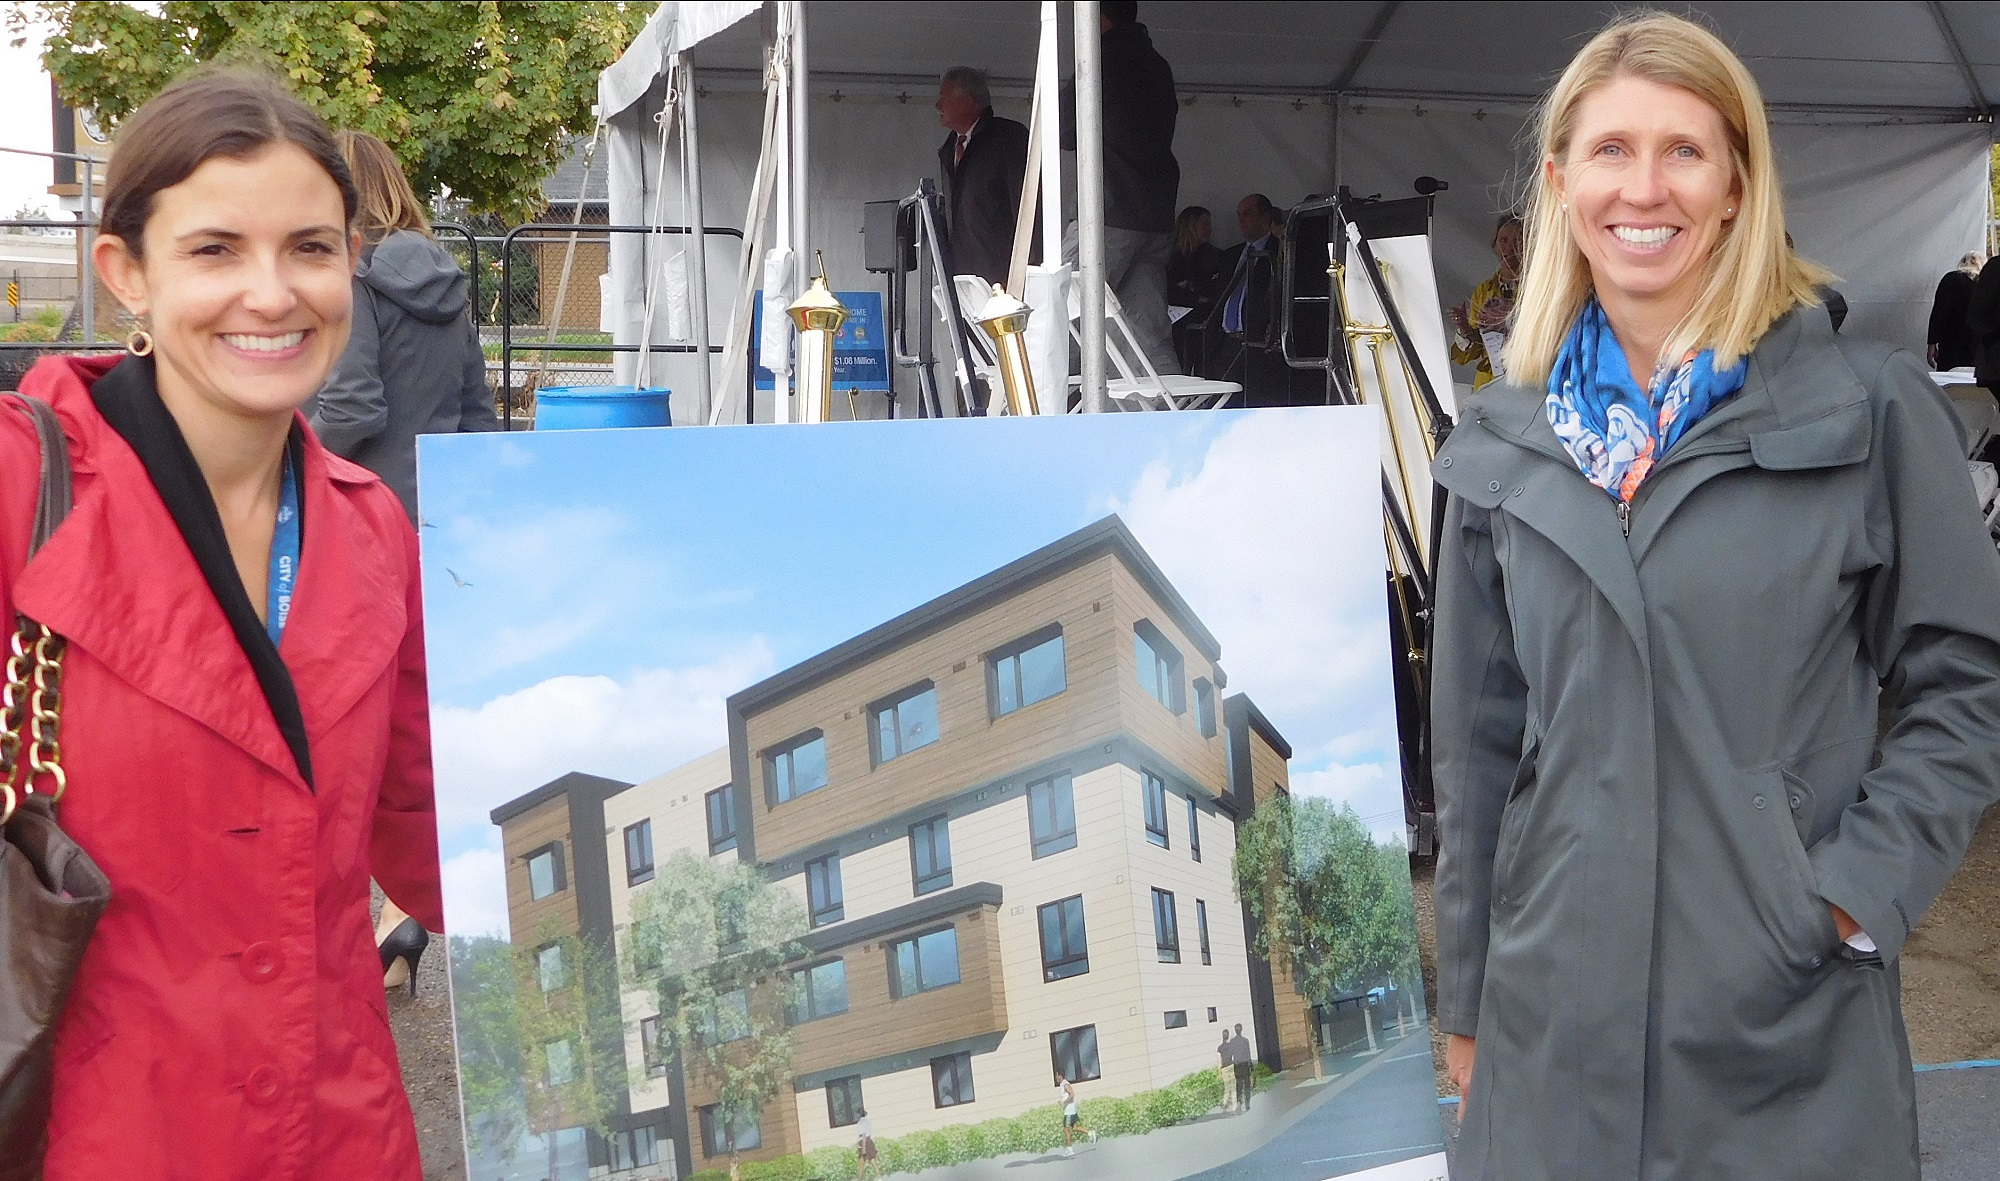 Vanessa Fry and Diana Lachiondo with artist rendering for New Hope building